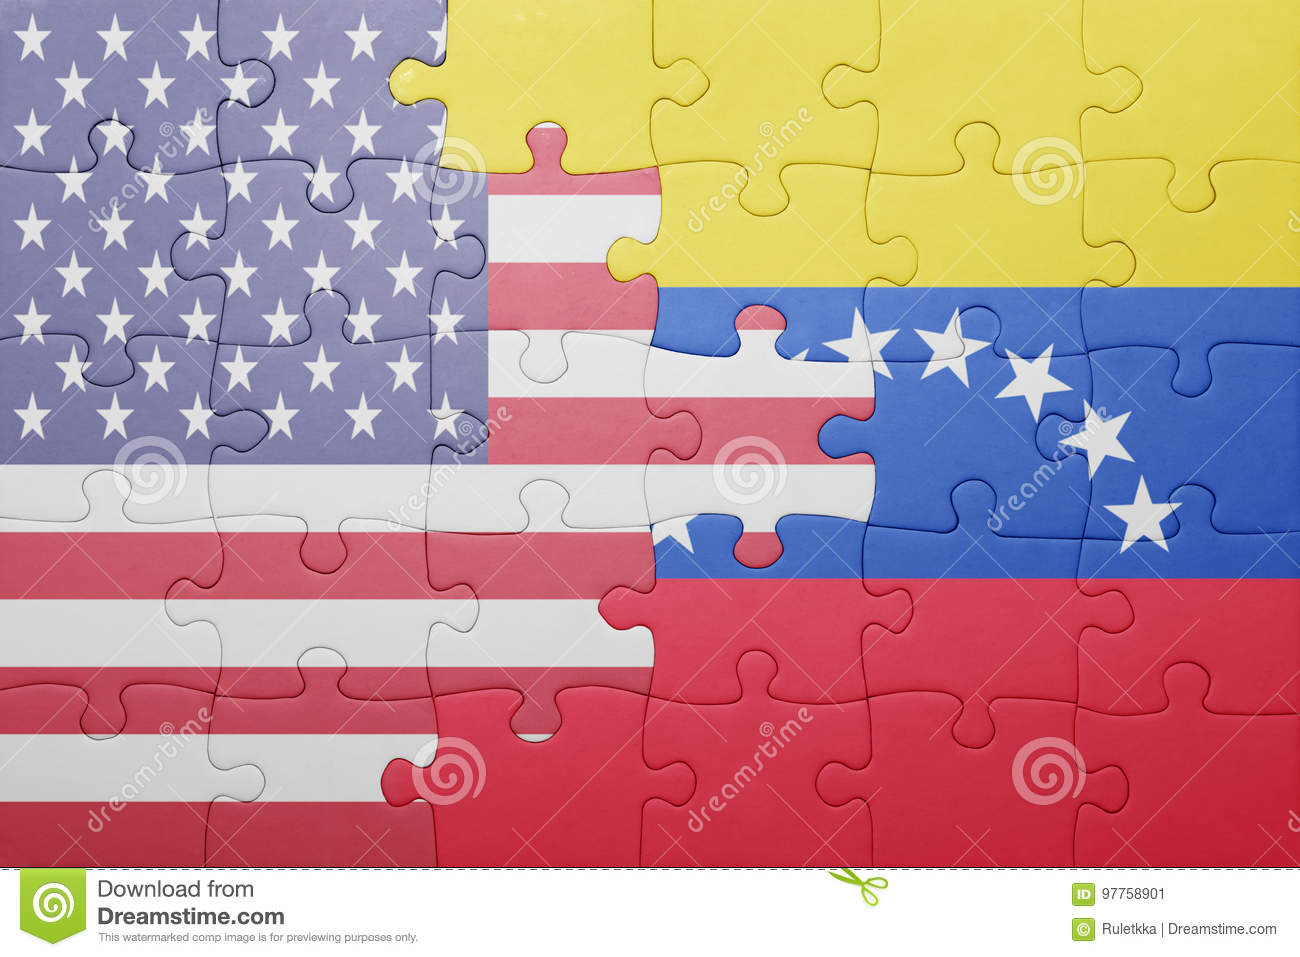 Puzzle with the national flag of united states of america and venezuela